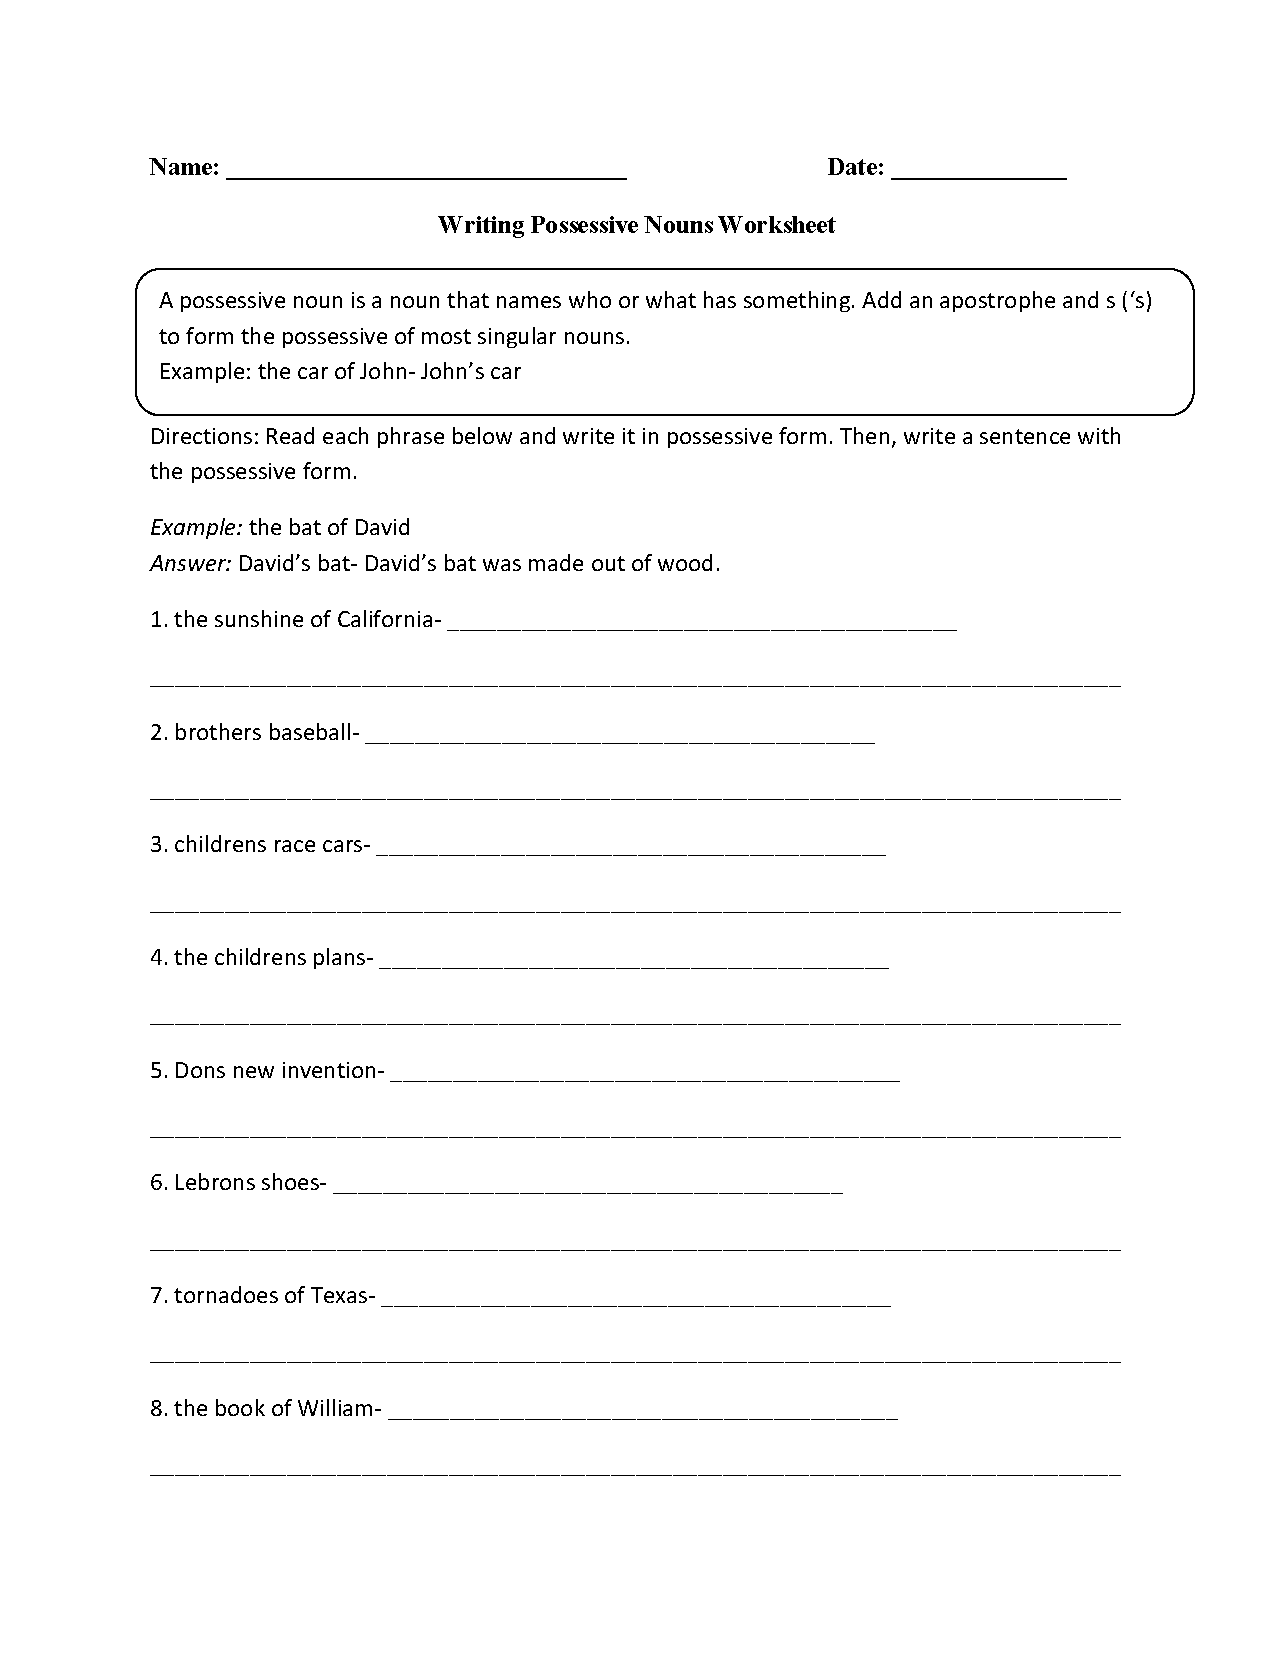 Worksheets Language Arts Worksheets For 3rd Grade writing with possessive nouns worksheet hmw pinterest worksheet